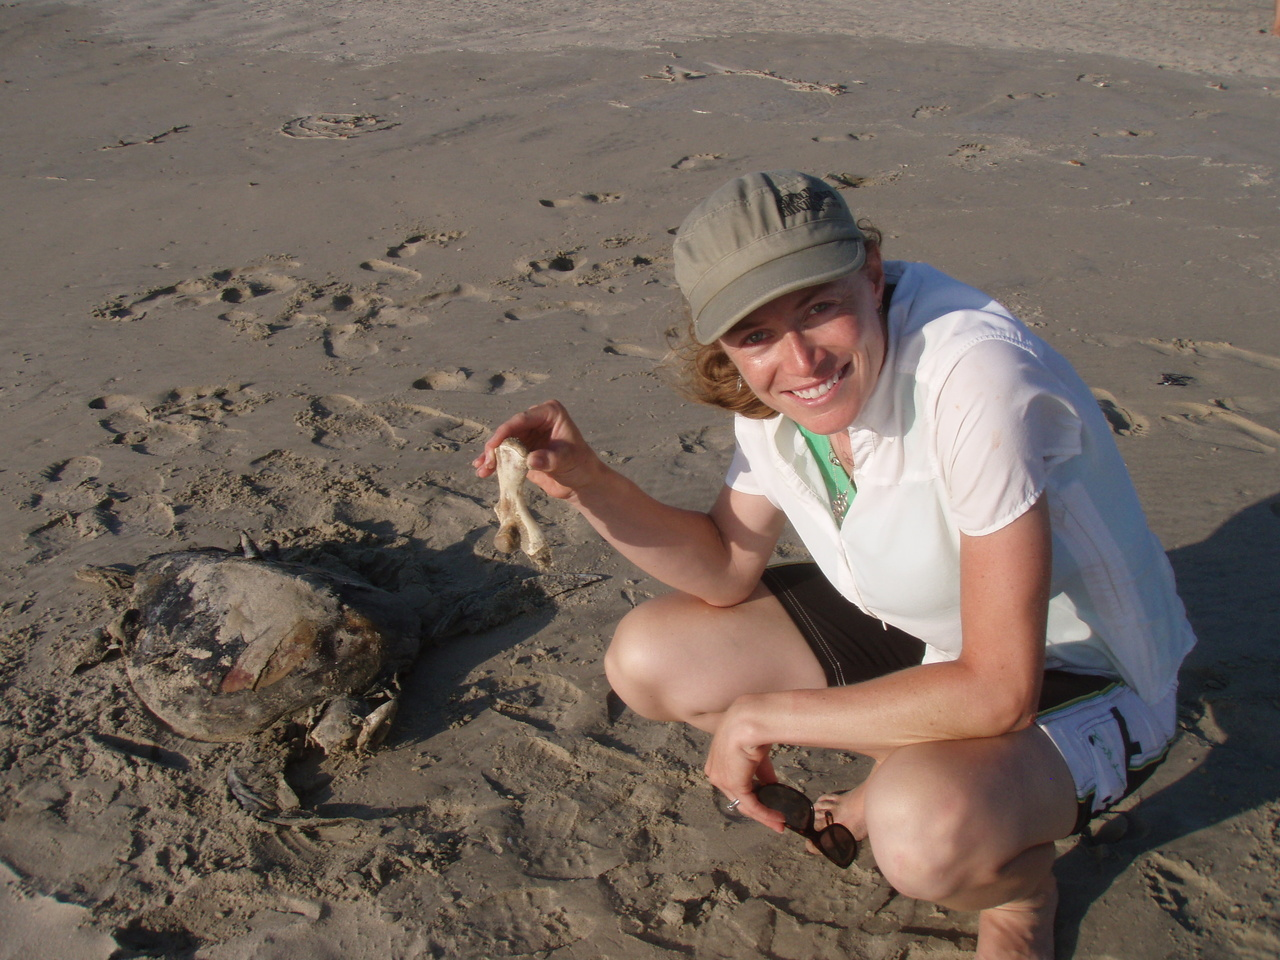 Dr. Cali Turner Tomascewicz holding a humerus bone from a stranded sea turtle.